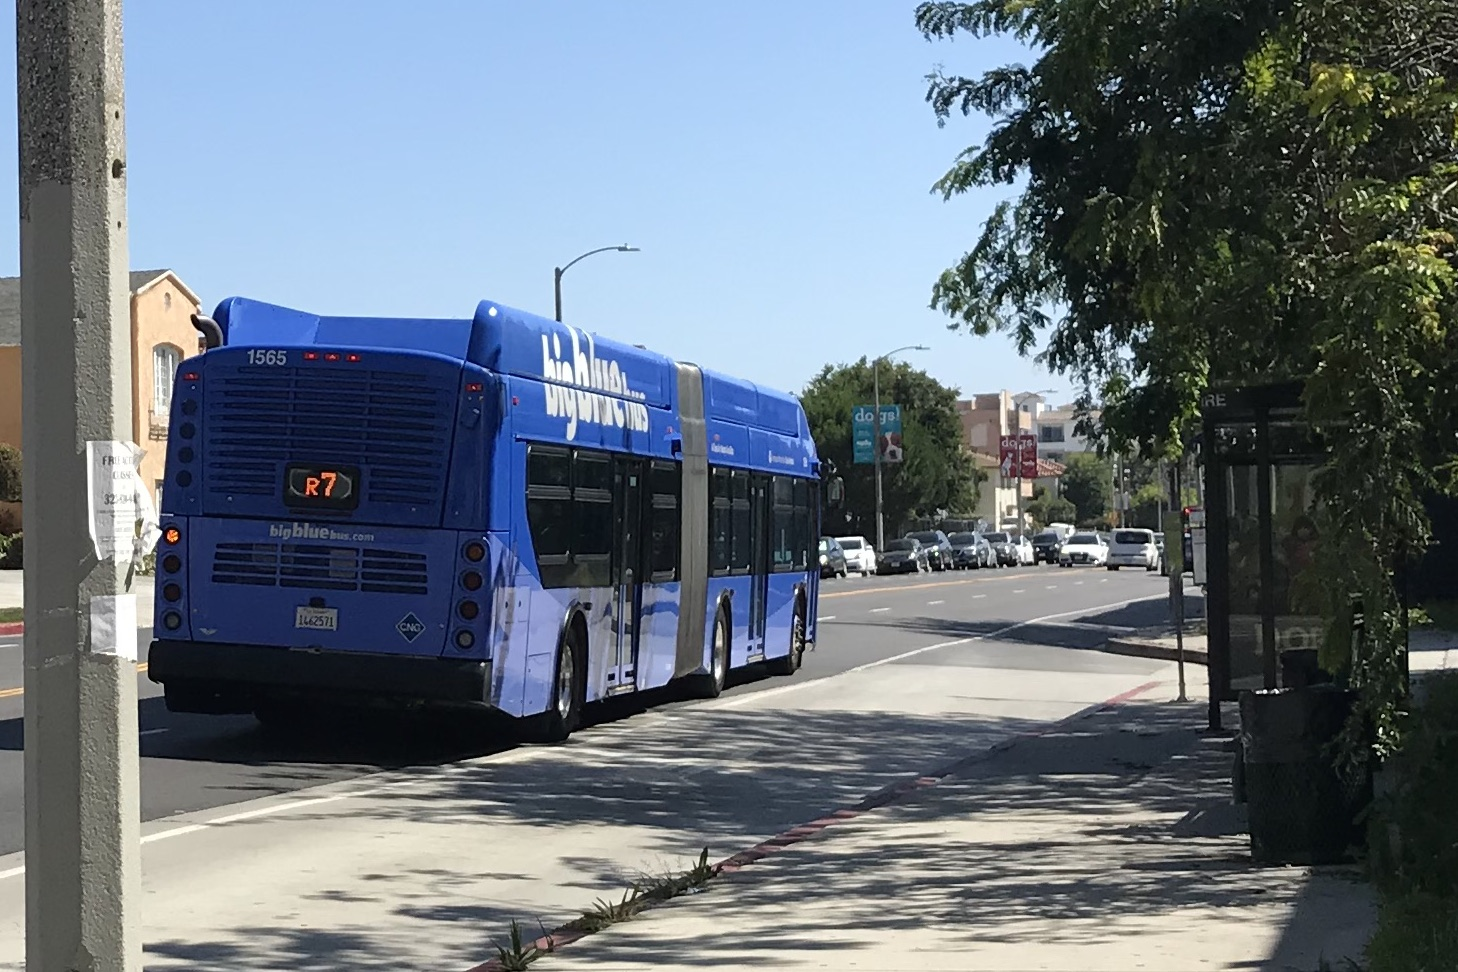 No Drives in LA — Get on the Rapid Bus | Eric Brightwell on culver city bus map, las vegas blue bus map, santa monica big blue buses, culver city google map, big blue bus map, santa monica bus 14, santa monica bus lines map,